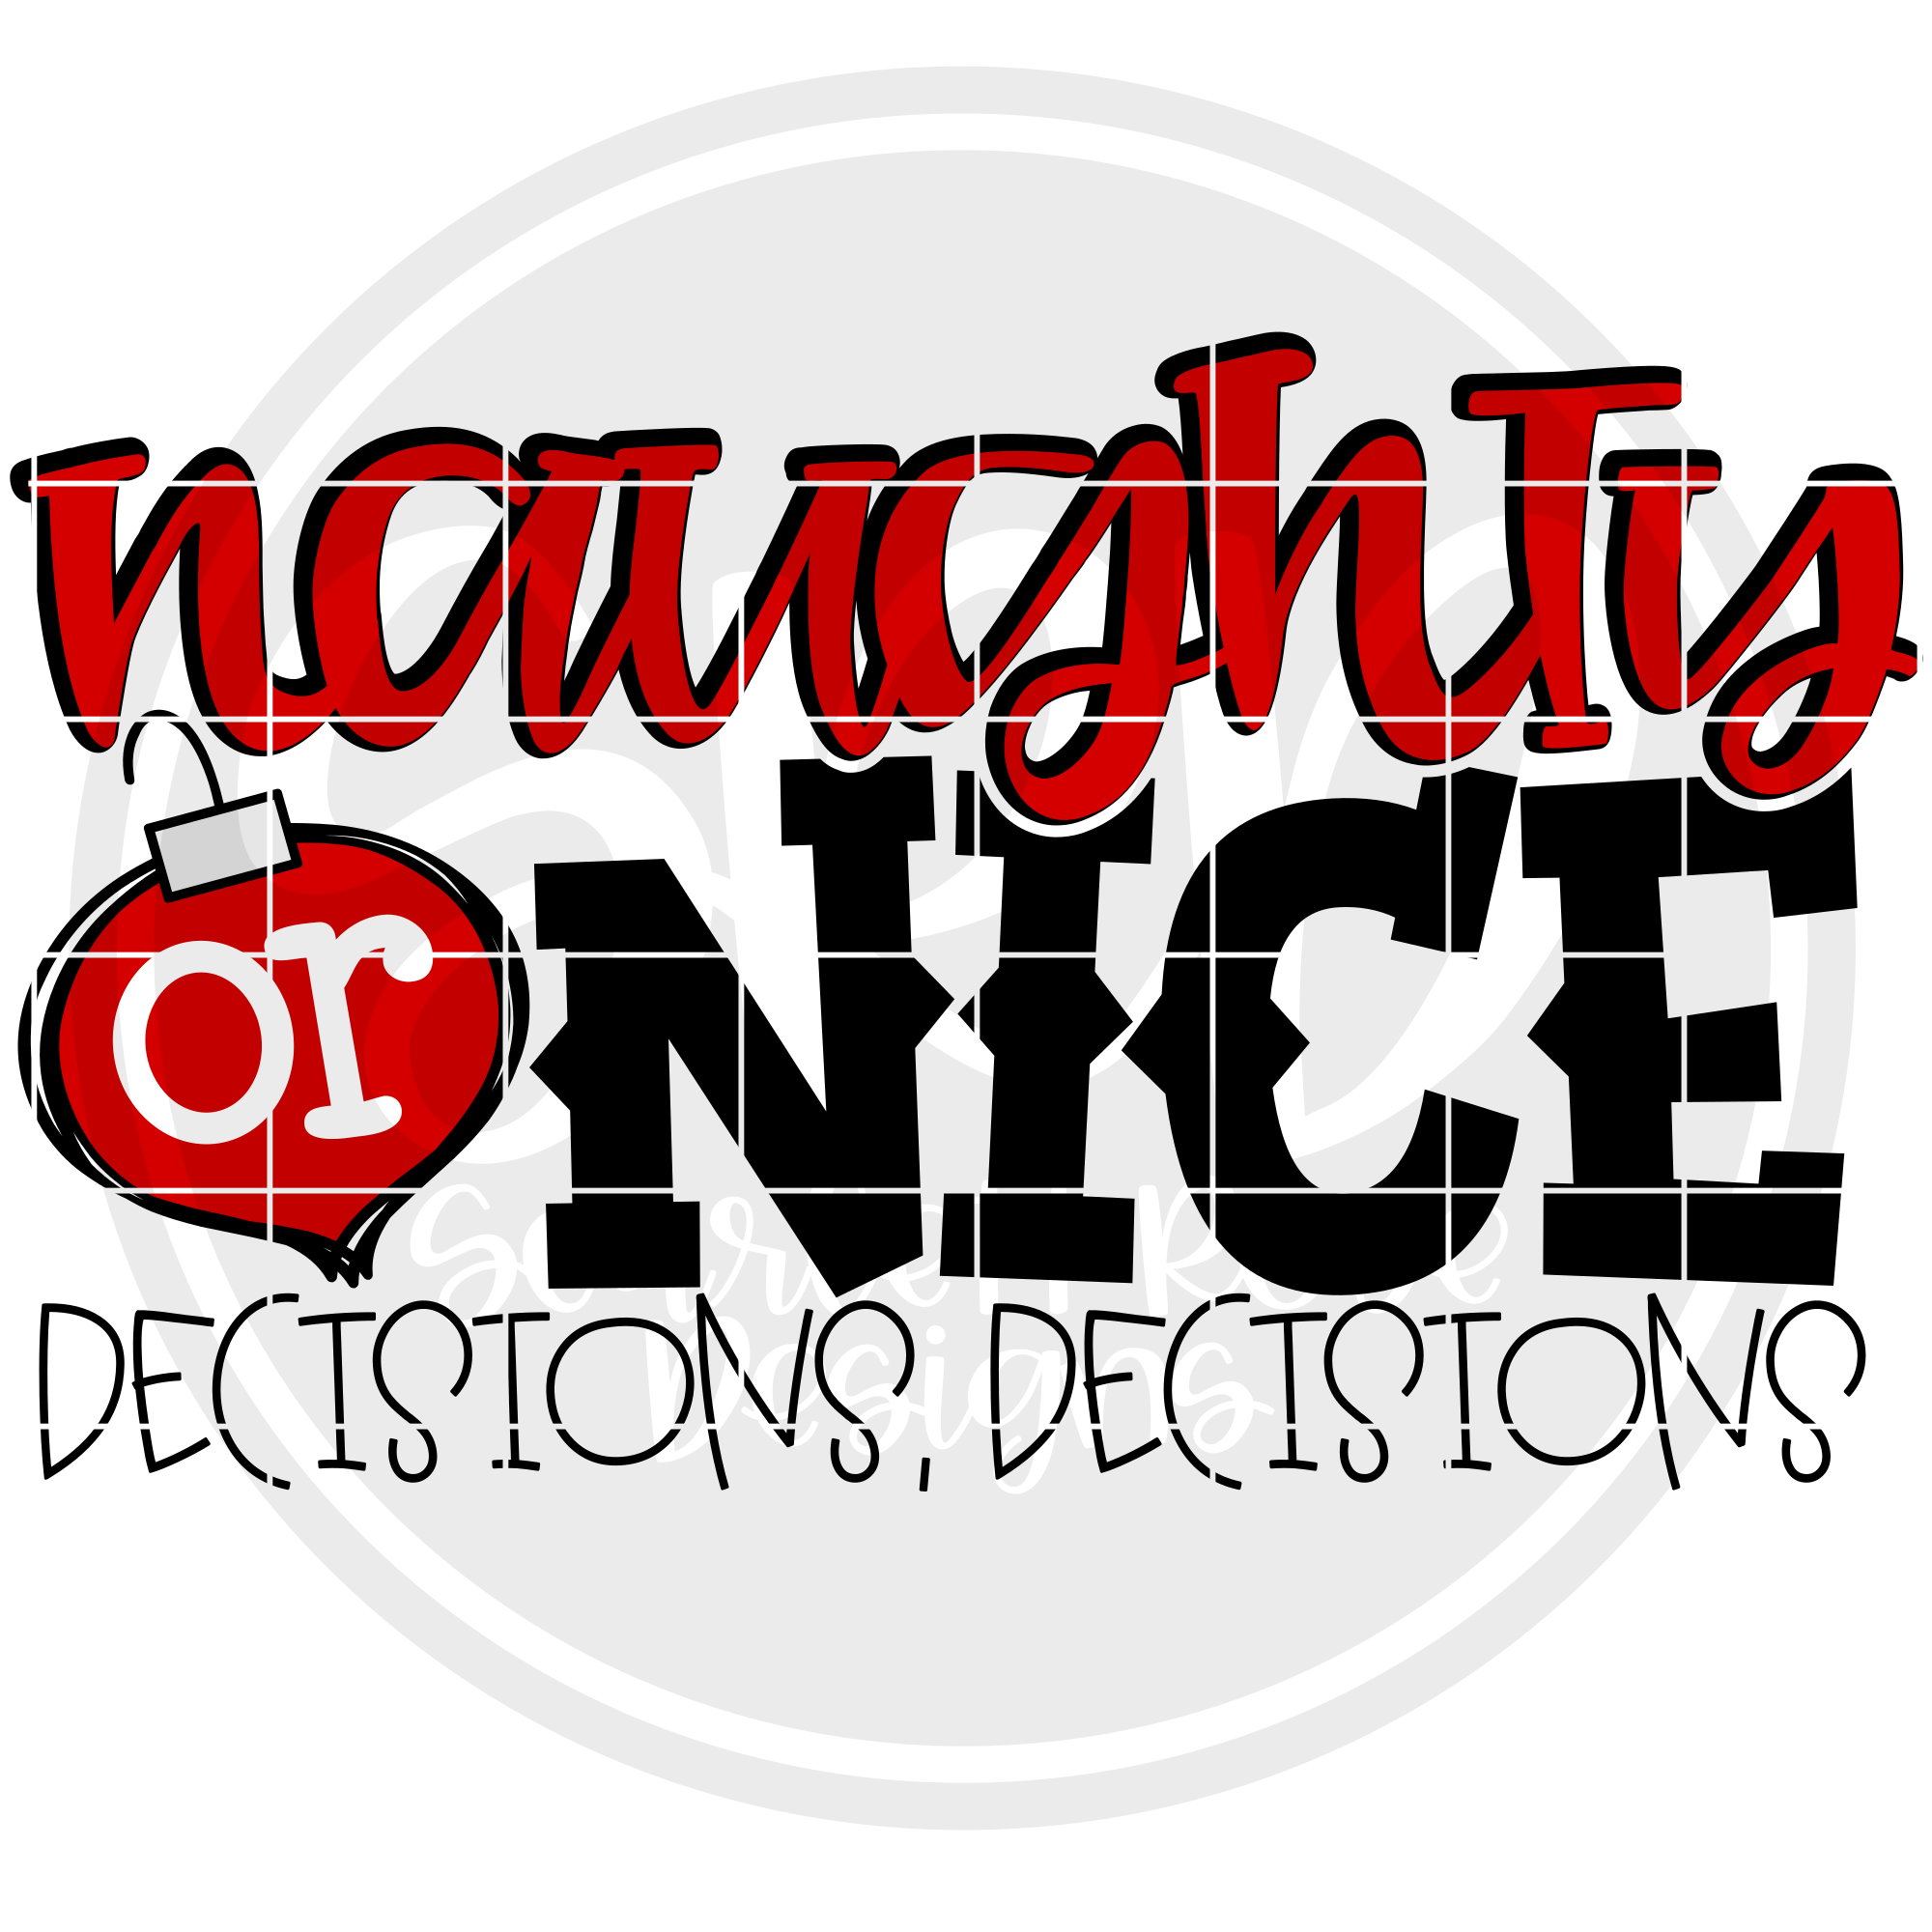 Naughty or Nice Decision Decisions - Color SVG example image 2